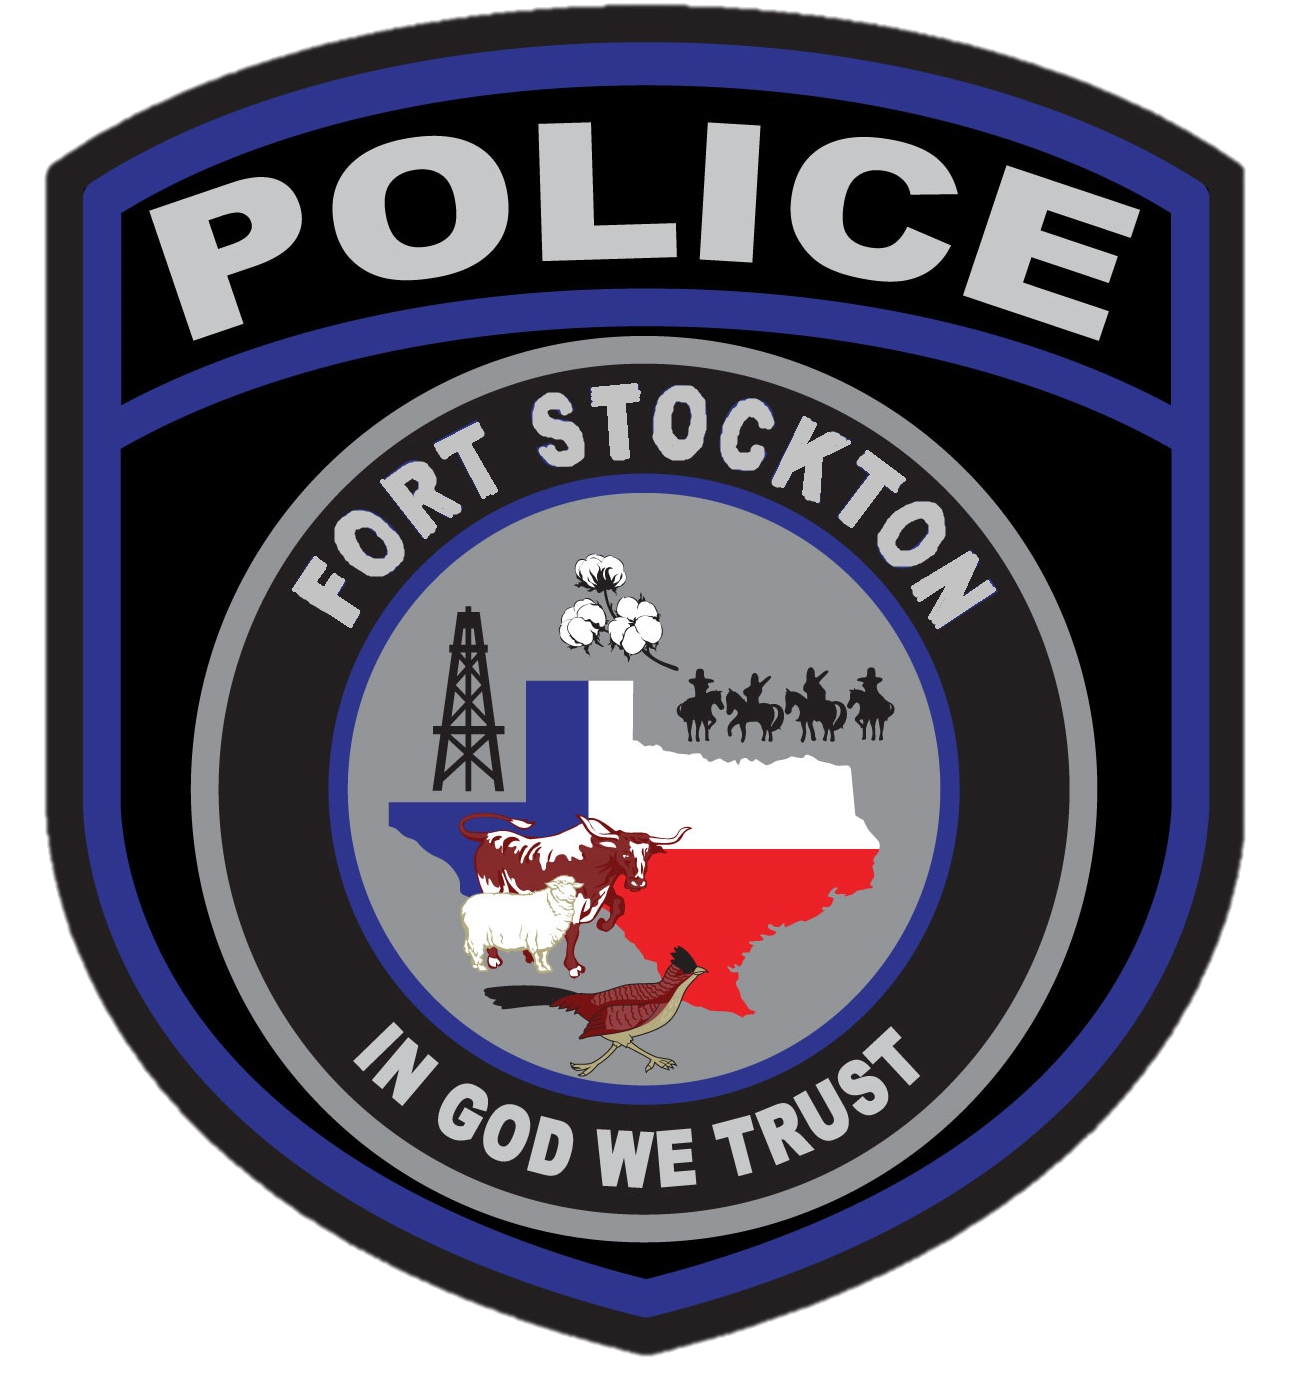 2018 New Fort Stockton Police Patch Texas Police Patches Texas Police Fort Stockton